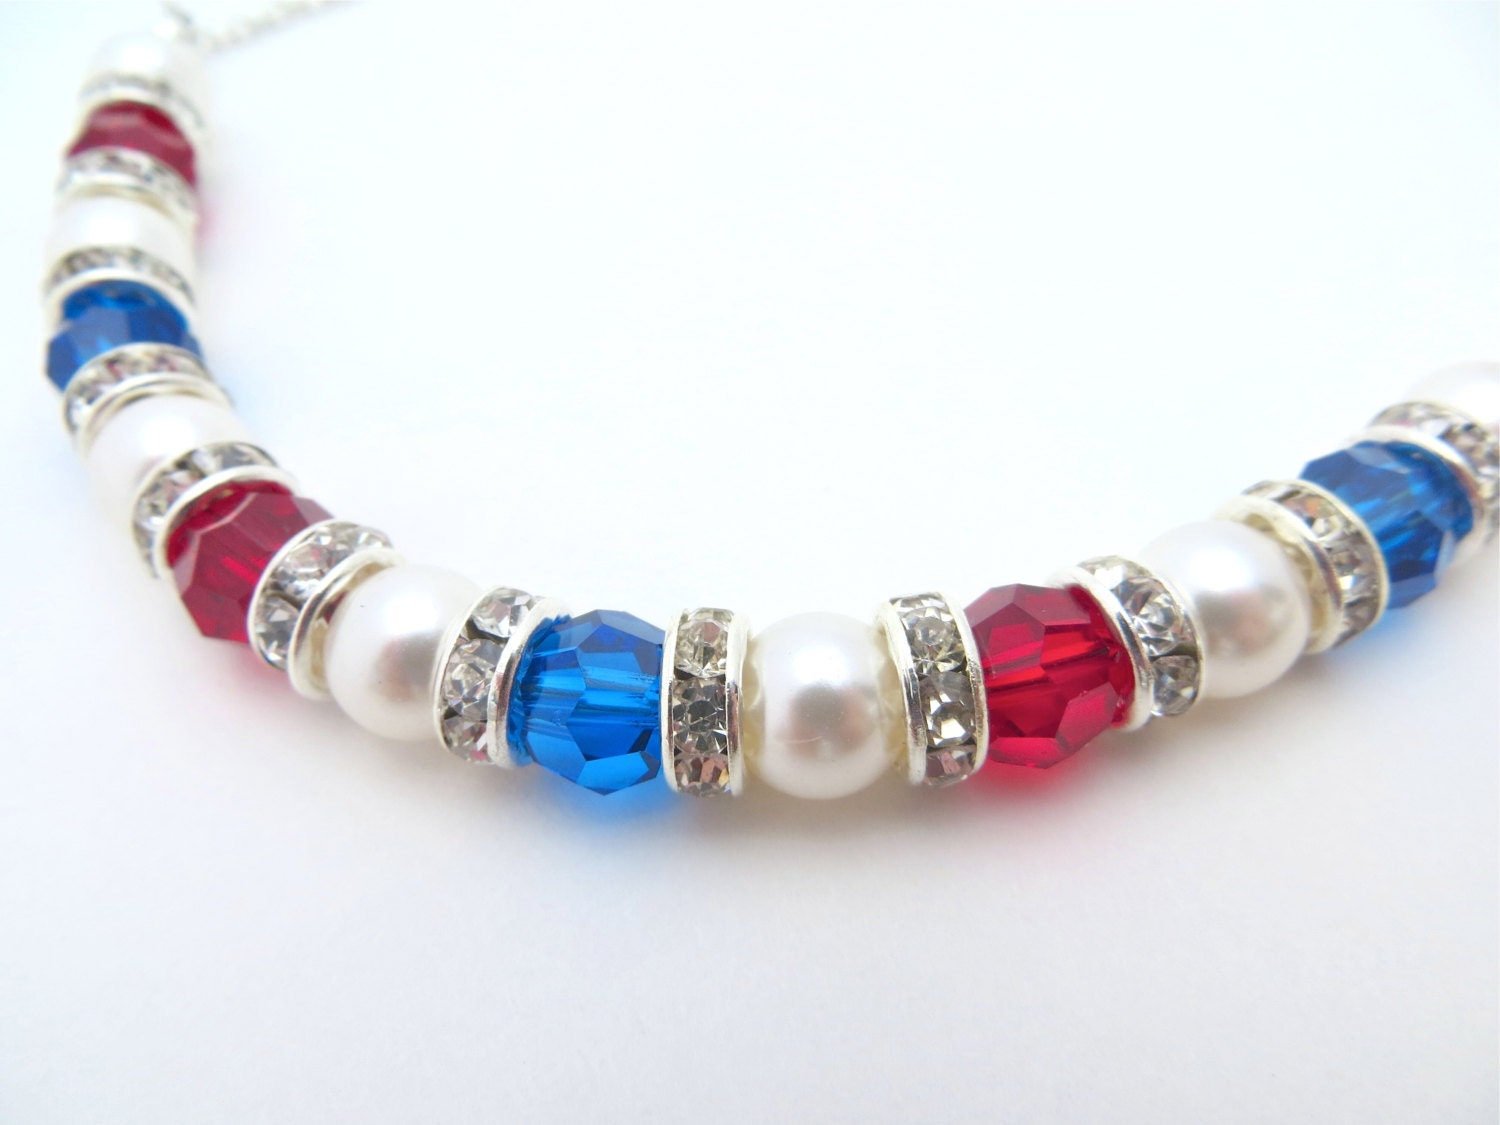 Patriotic Necklace, Red, White and Blue Necklace, Memorial Day Necklace, Forth of July Necklace, USA Necklace With Swarovski Crystal Pearl - LucidDreamsJewelry